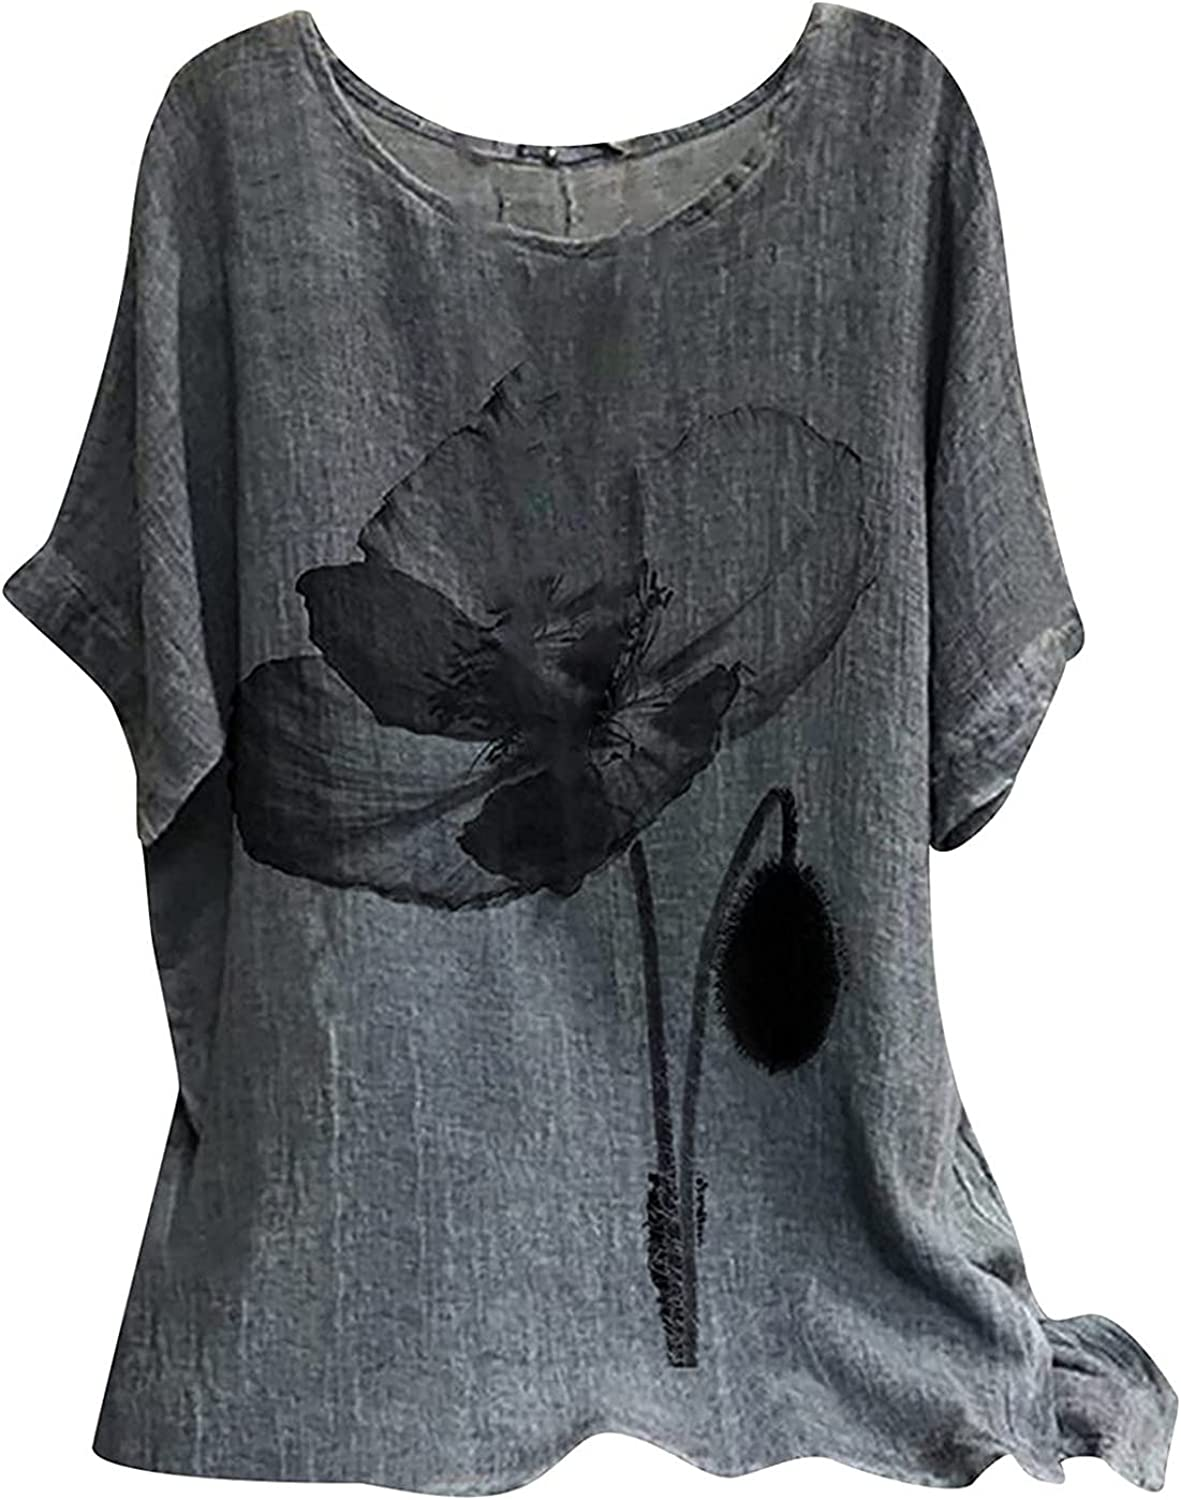 Women's Loose Cotton Linen Blouse Round Neck with Chinese Frog Button Tops Swing Pleated Loose Ruffle Hem Blouse